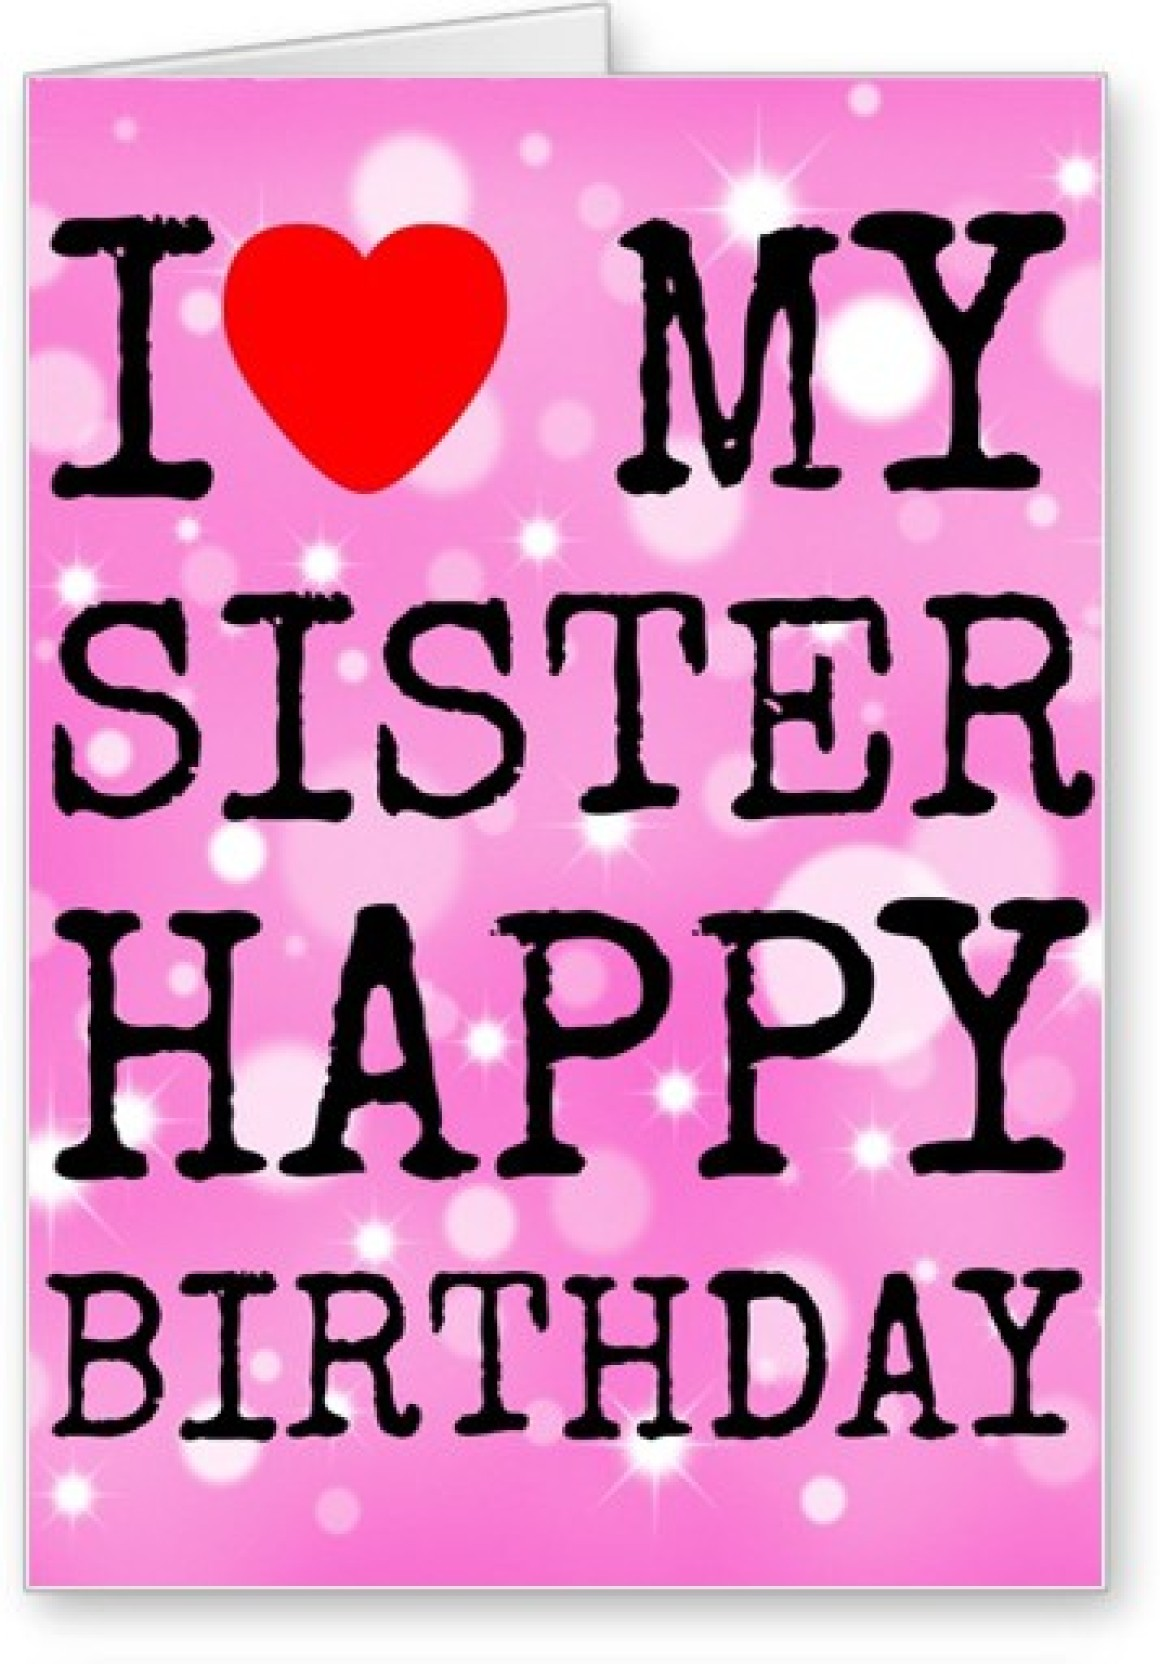 Lolprint I Love My Sister Happy Birthday Greeting Card Price In